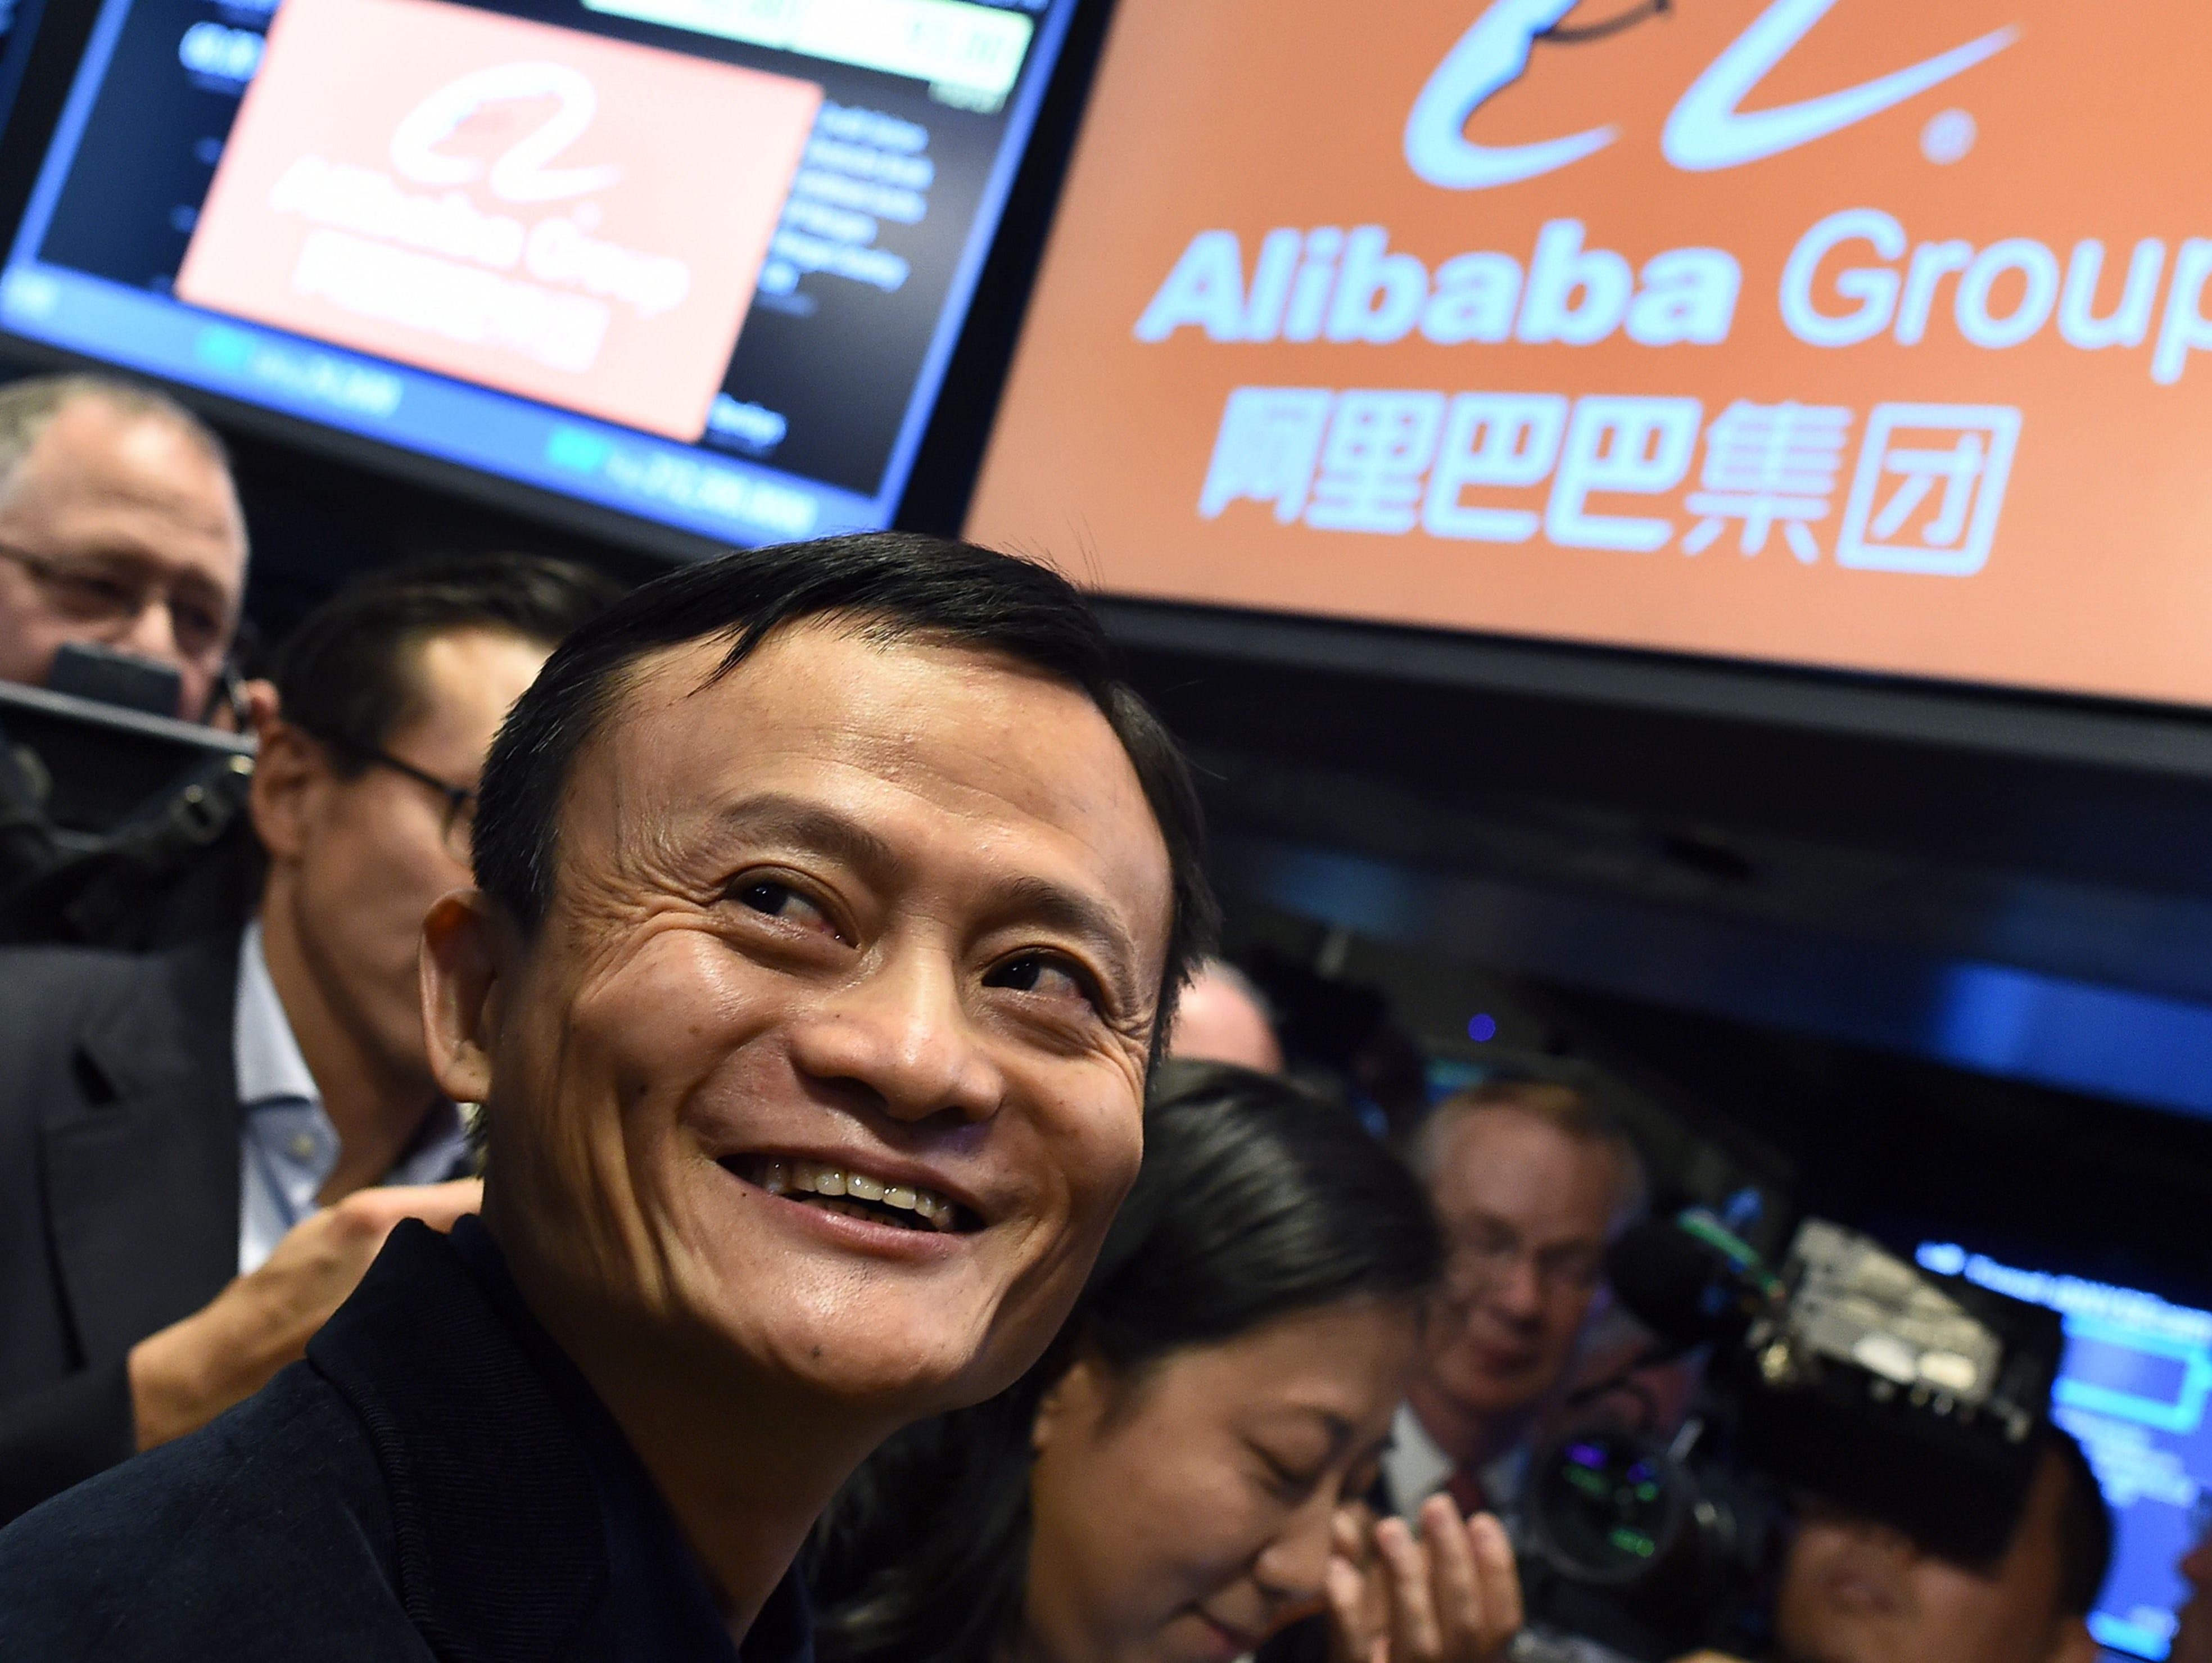 This September 19, 2014 file photo shows Chinese online retail giant Alibaba founder Jack Ma as he smiles  waiting for the trading to open on the floor at the New York Stock Exchange in New York.